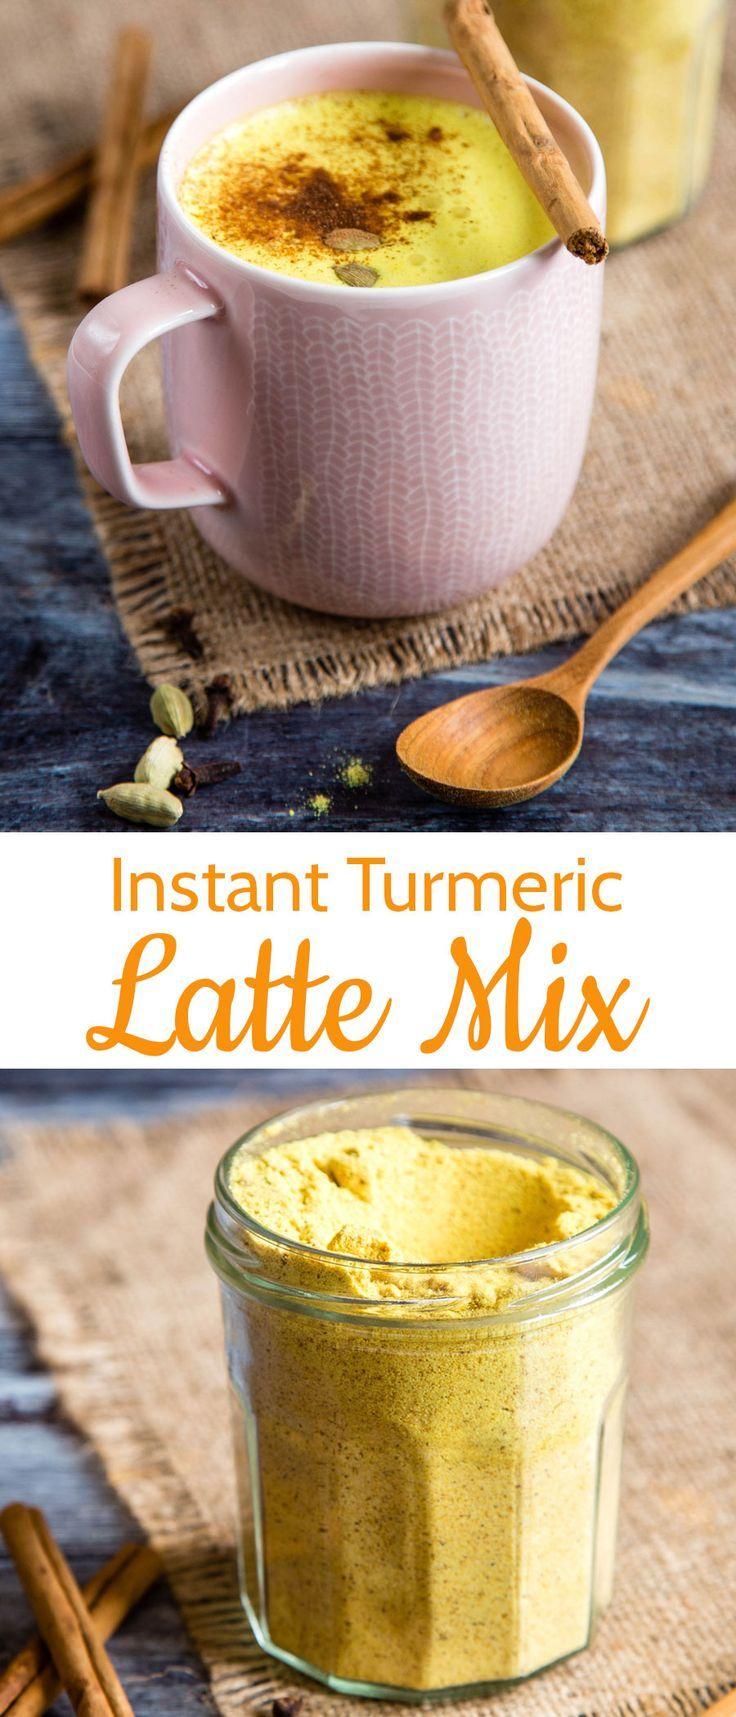 Instant Turmeric Latte Mix (Vegan, Paleo, Keto) Recipe